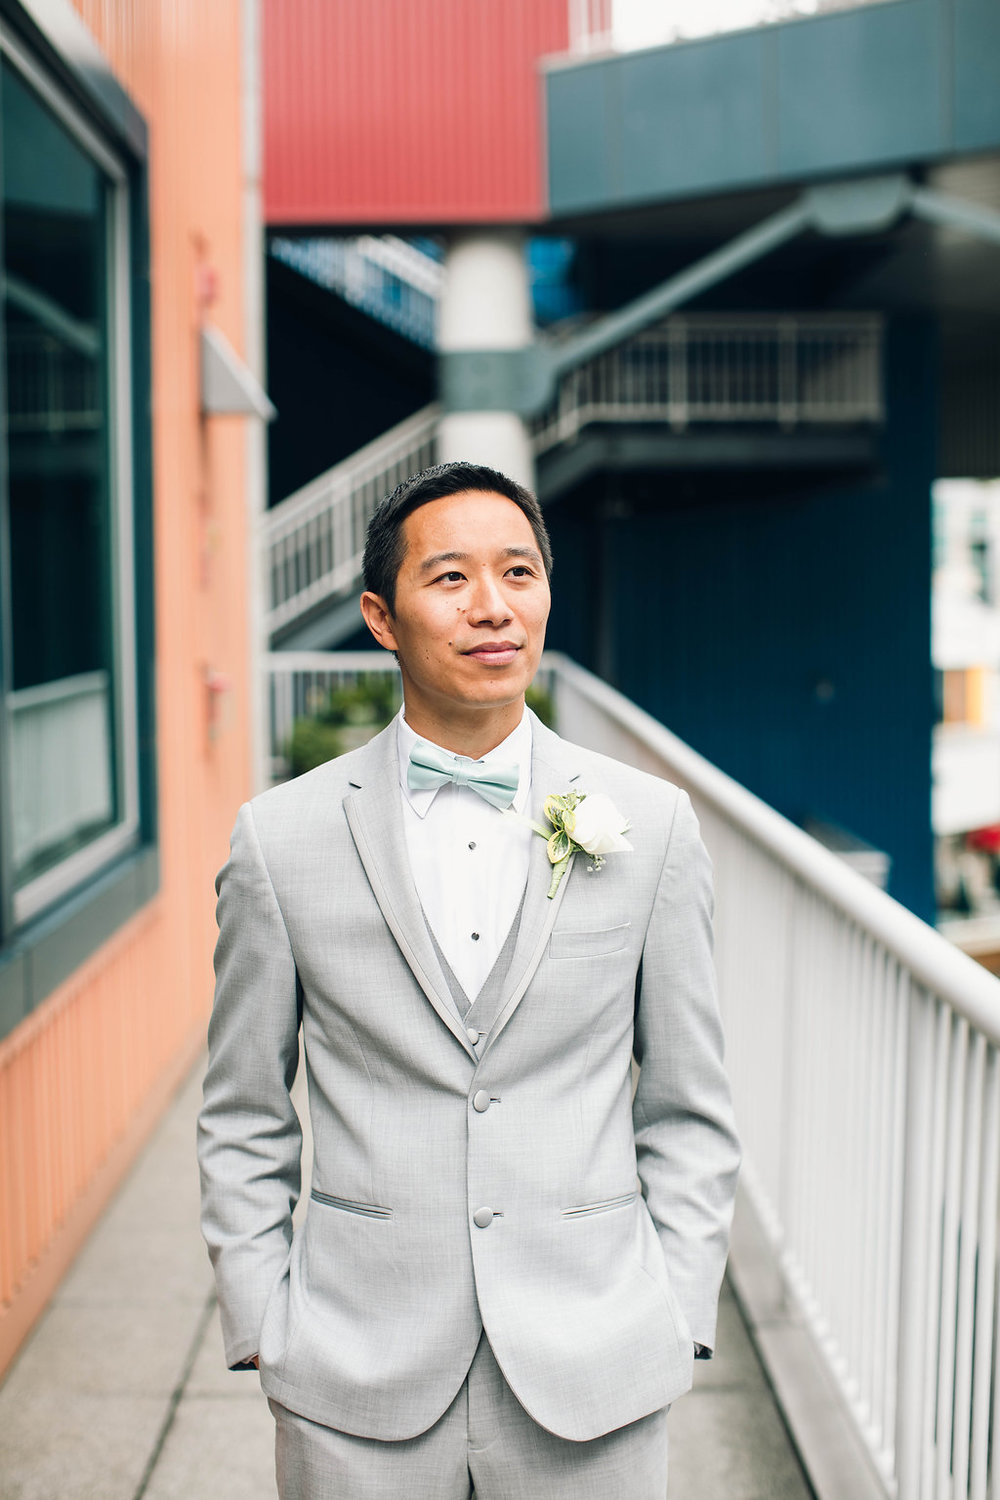 Bao_Uyen+Chris_Wedding_Seattle_Bell_Harbor_6182016_357.jpg